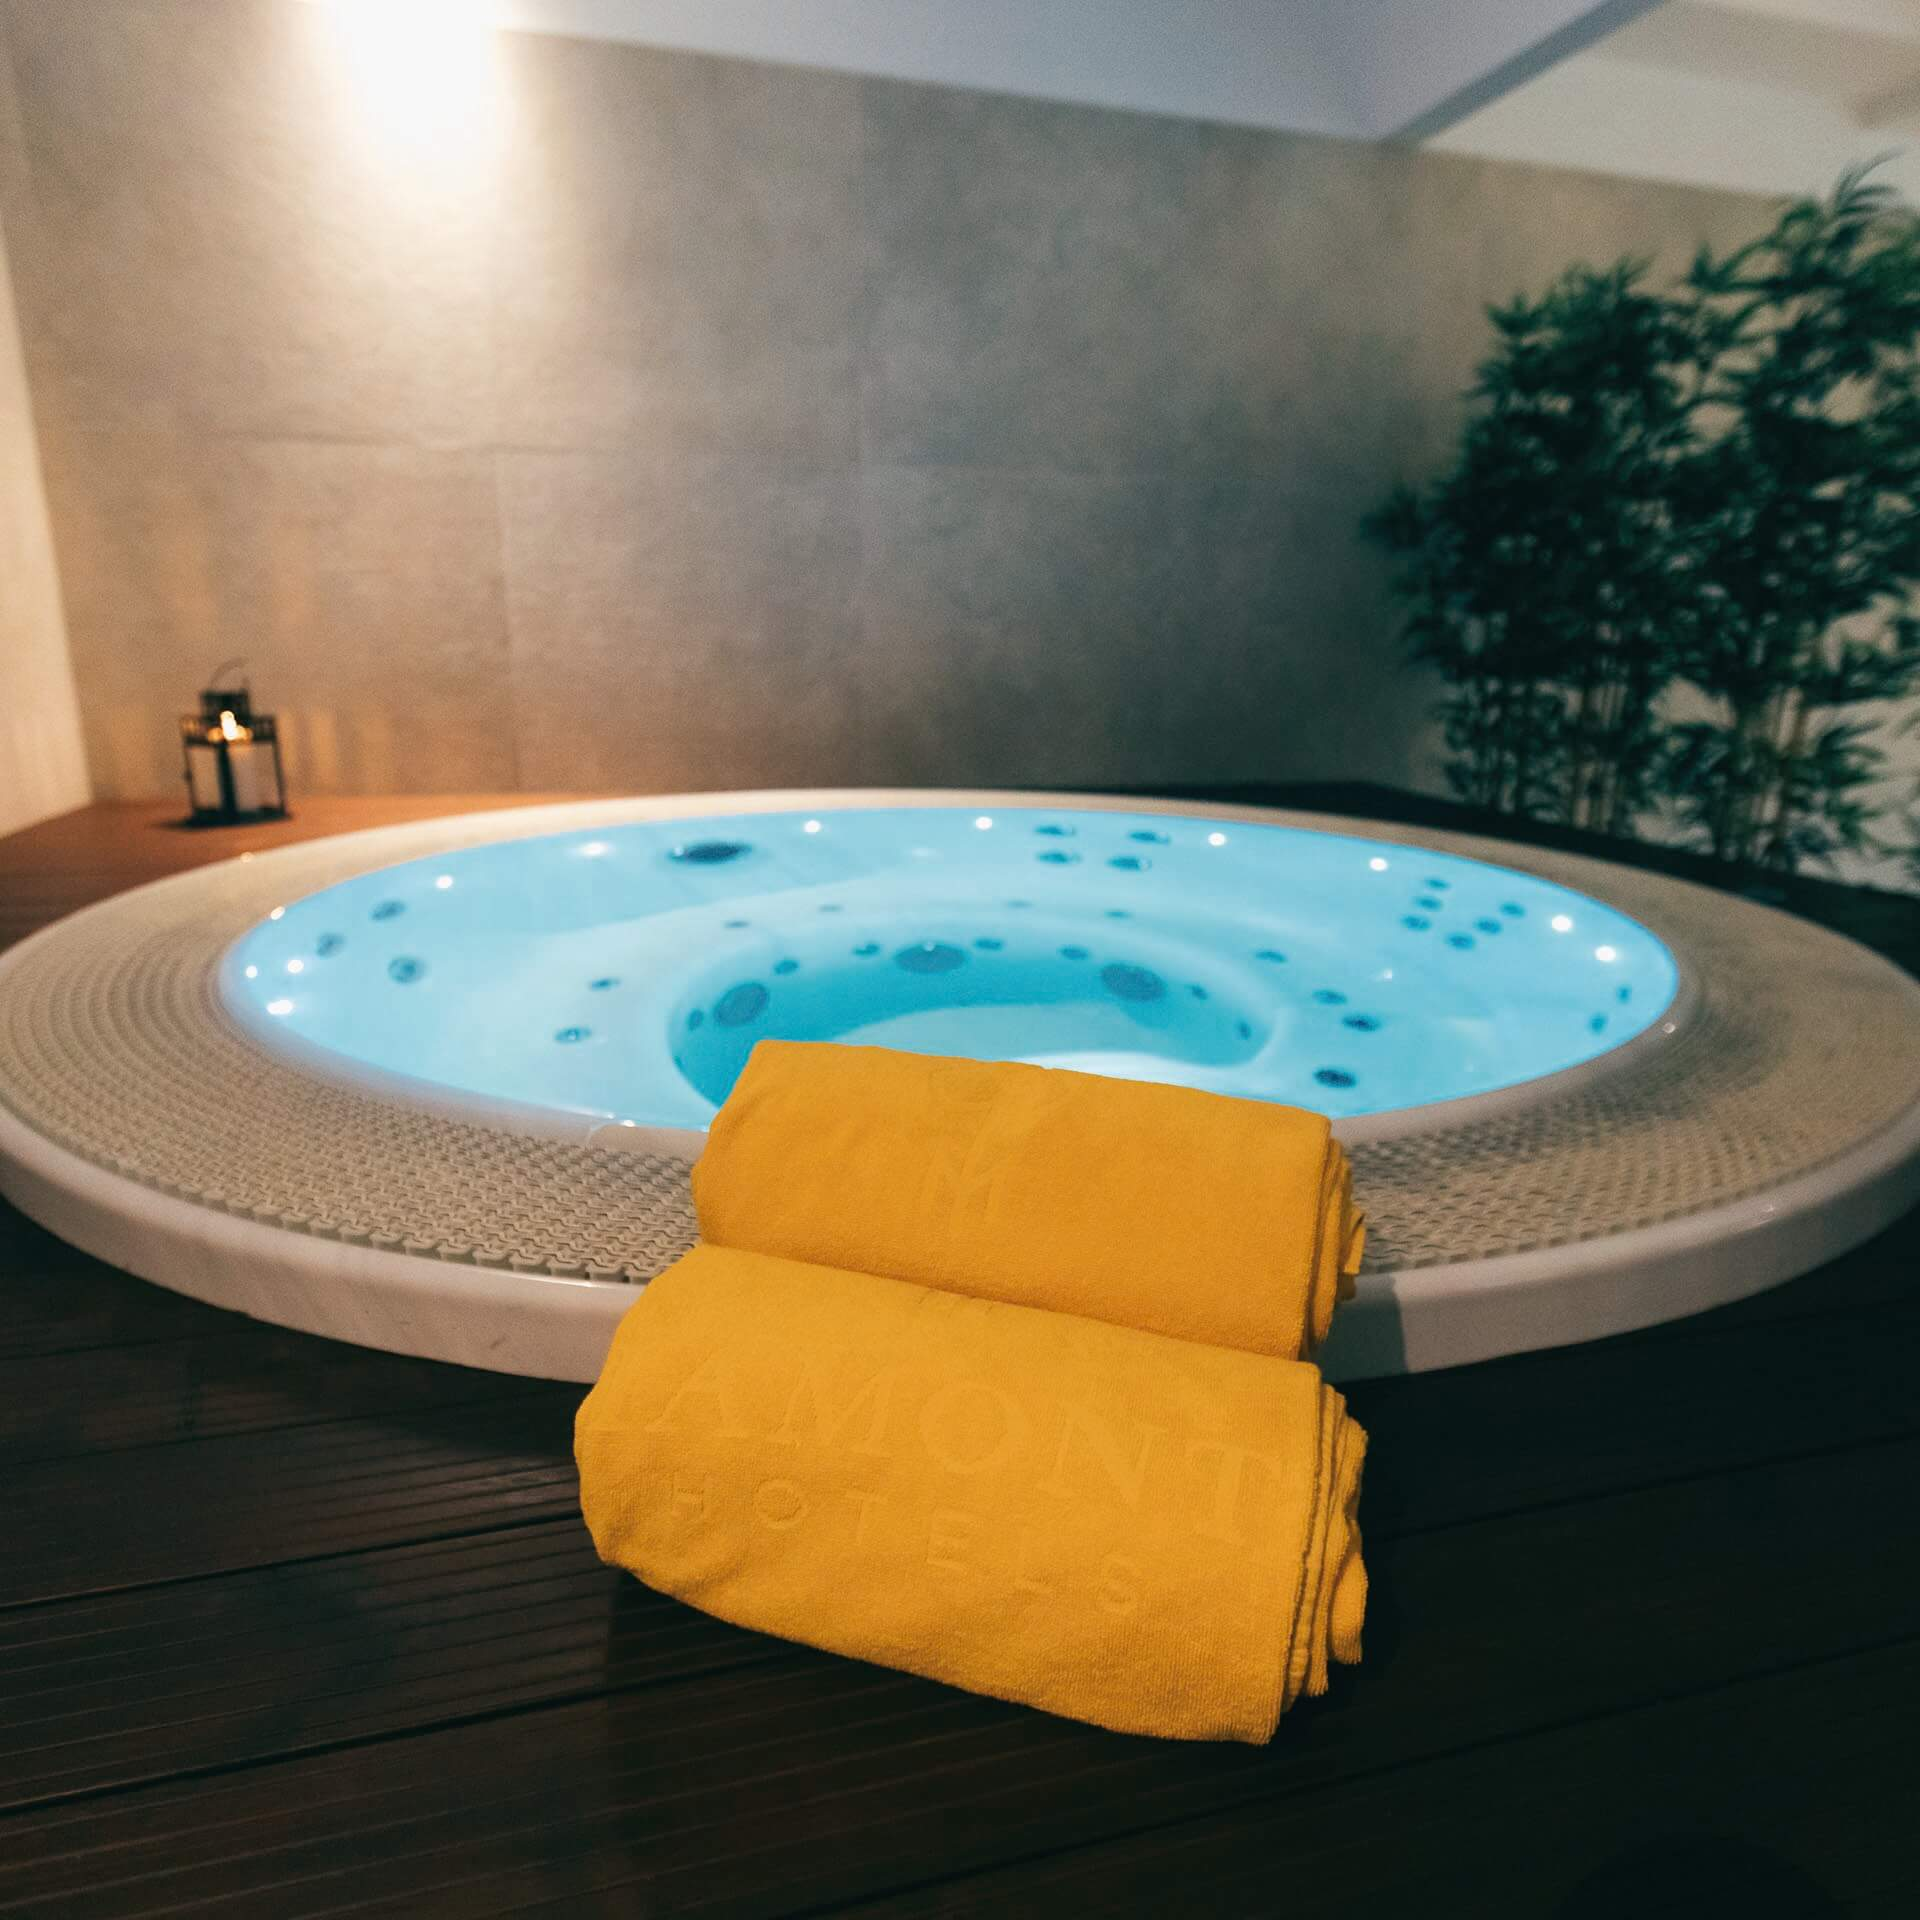 Jacuzzi Spa 2 – Ribeira Collection Hotel – Arcos de Valdevez